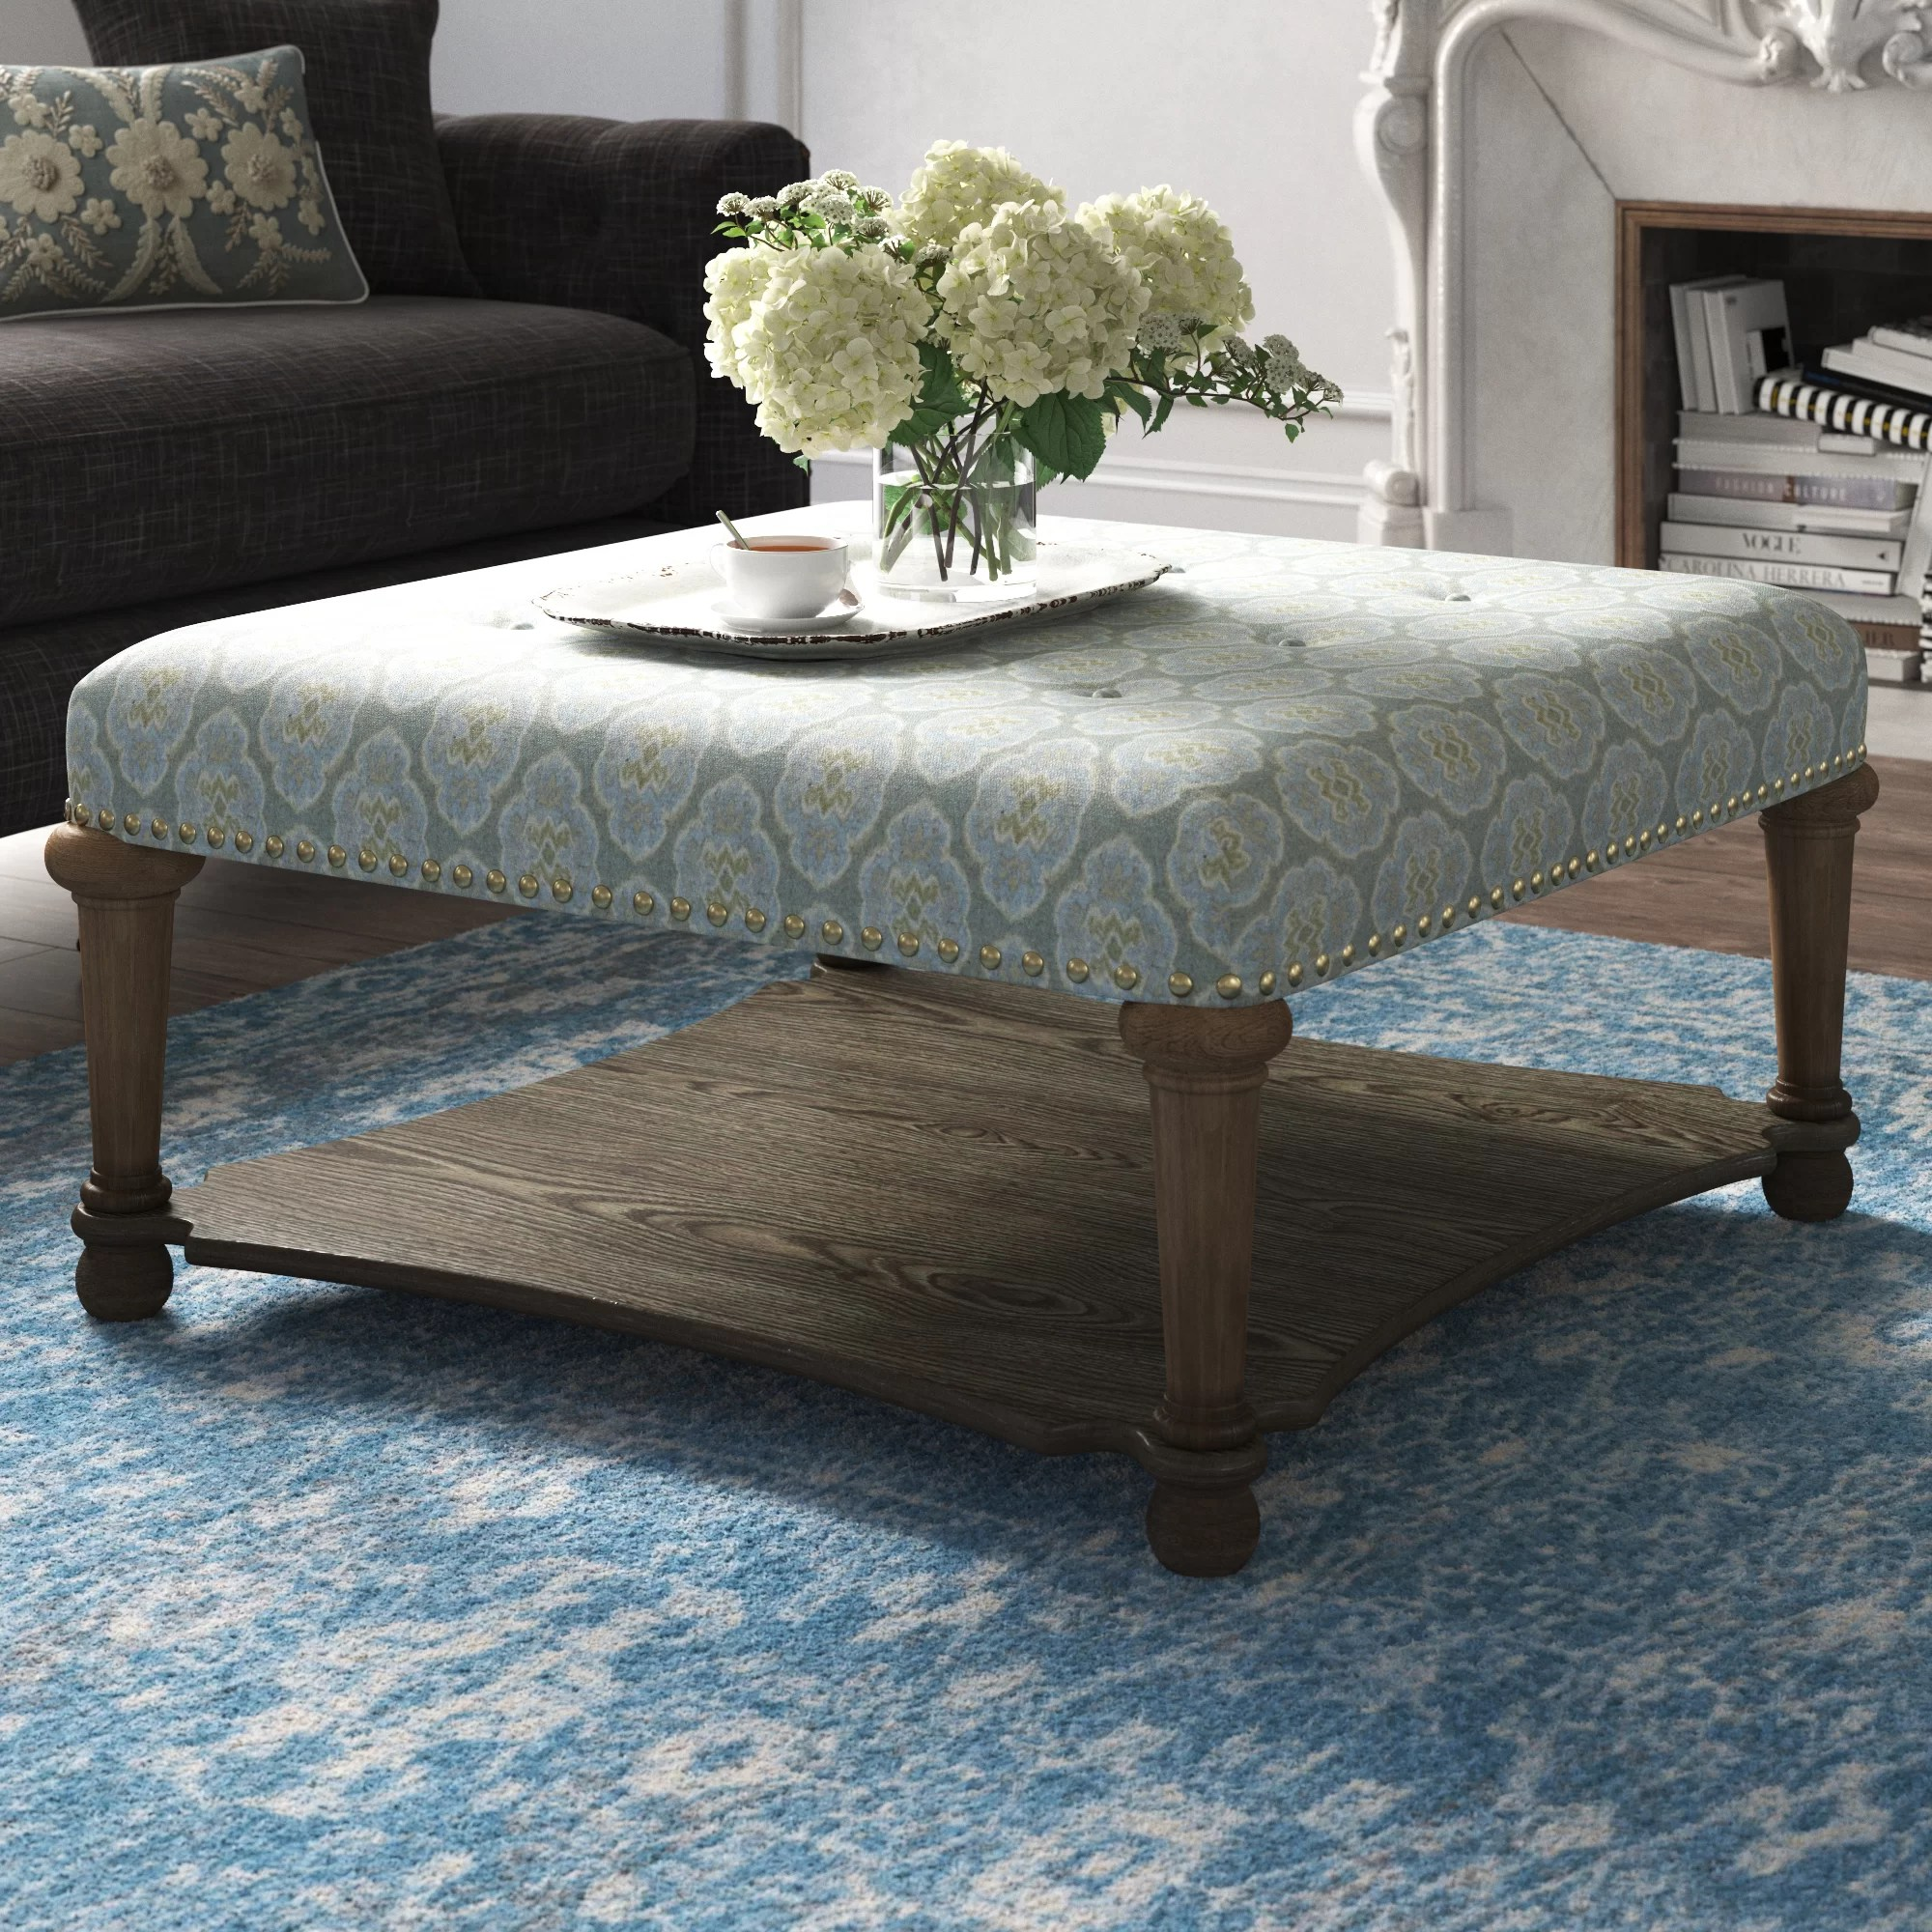 melrose 40 tufted square geometric cocktail with storage ottoman